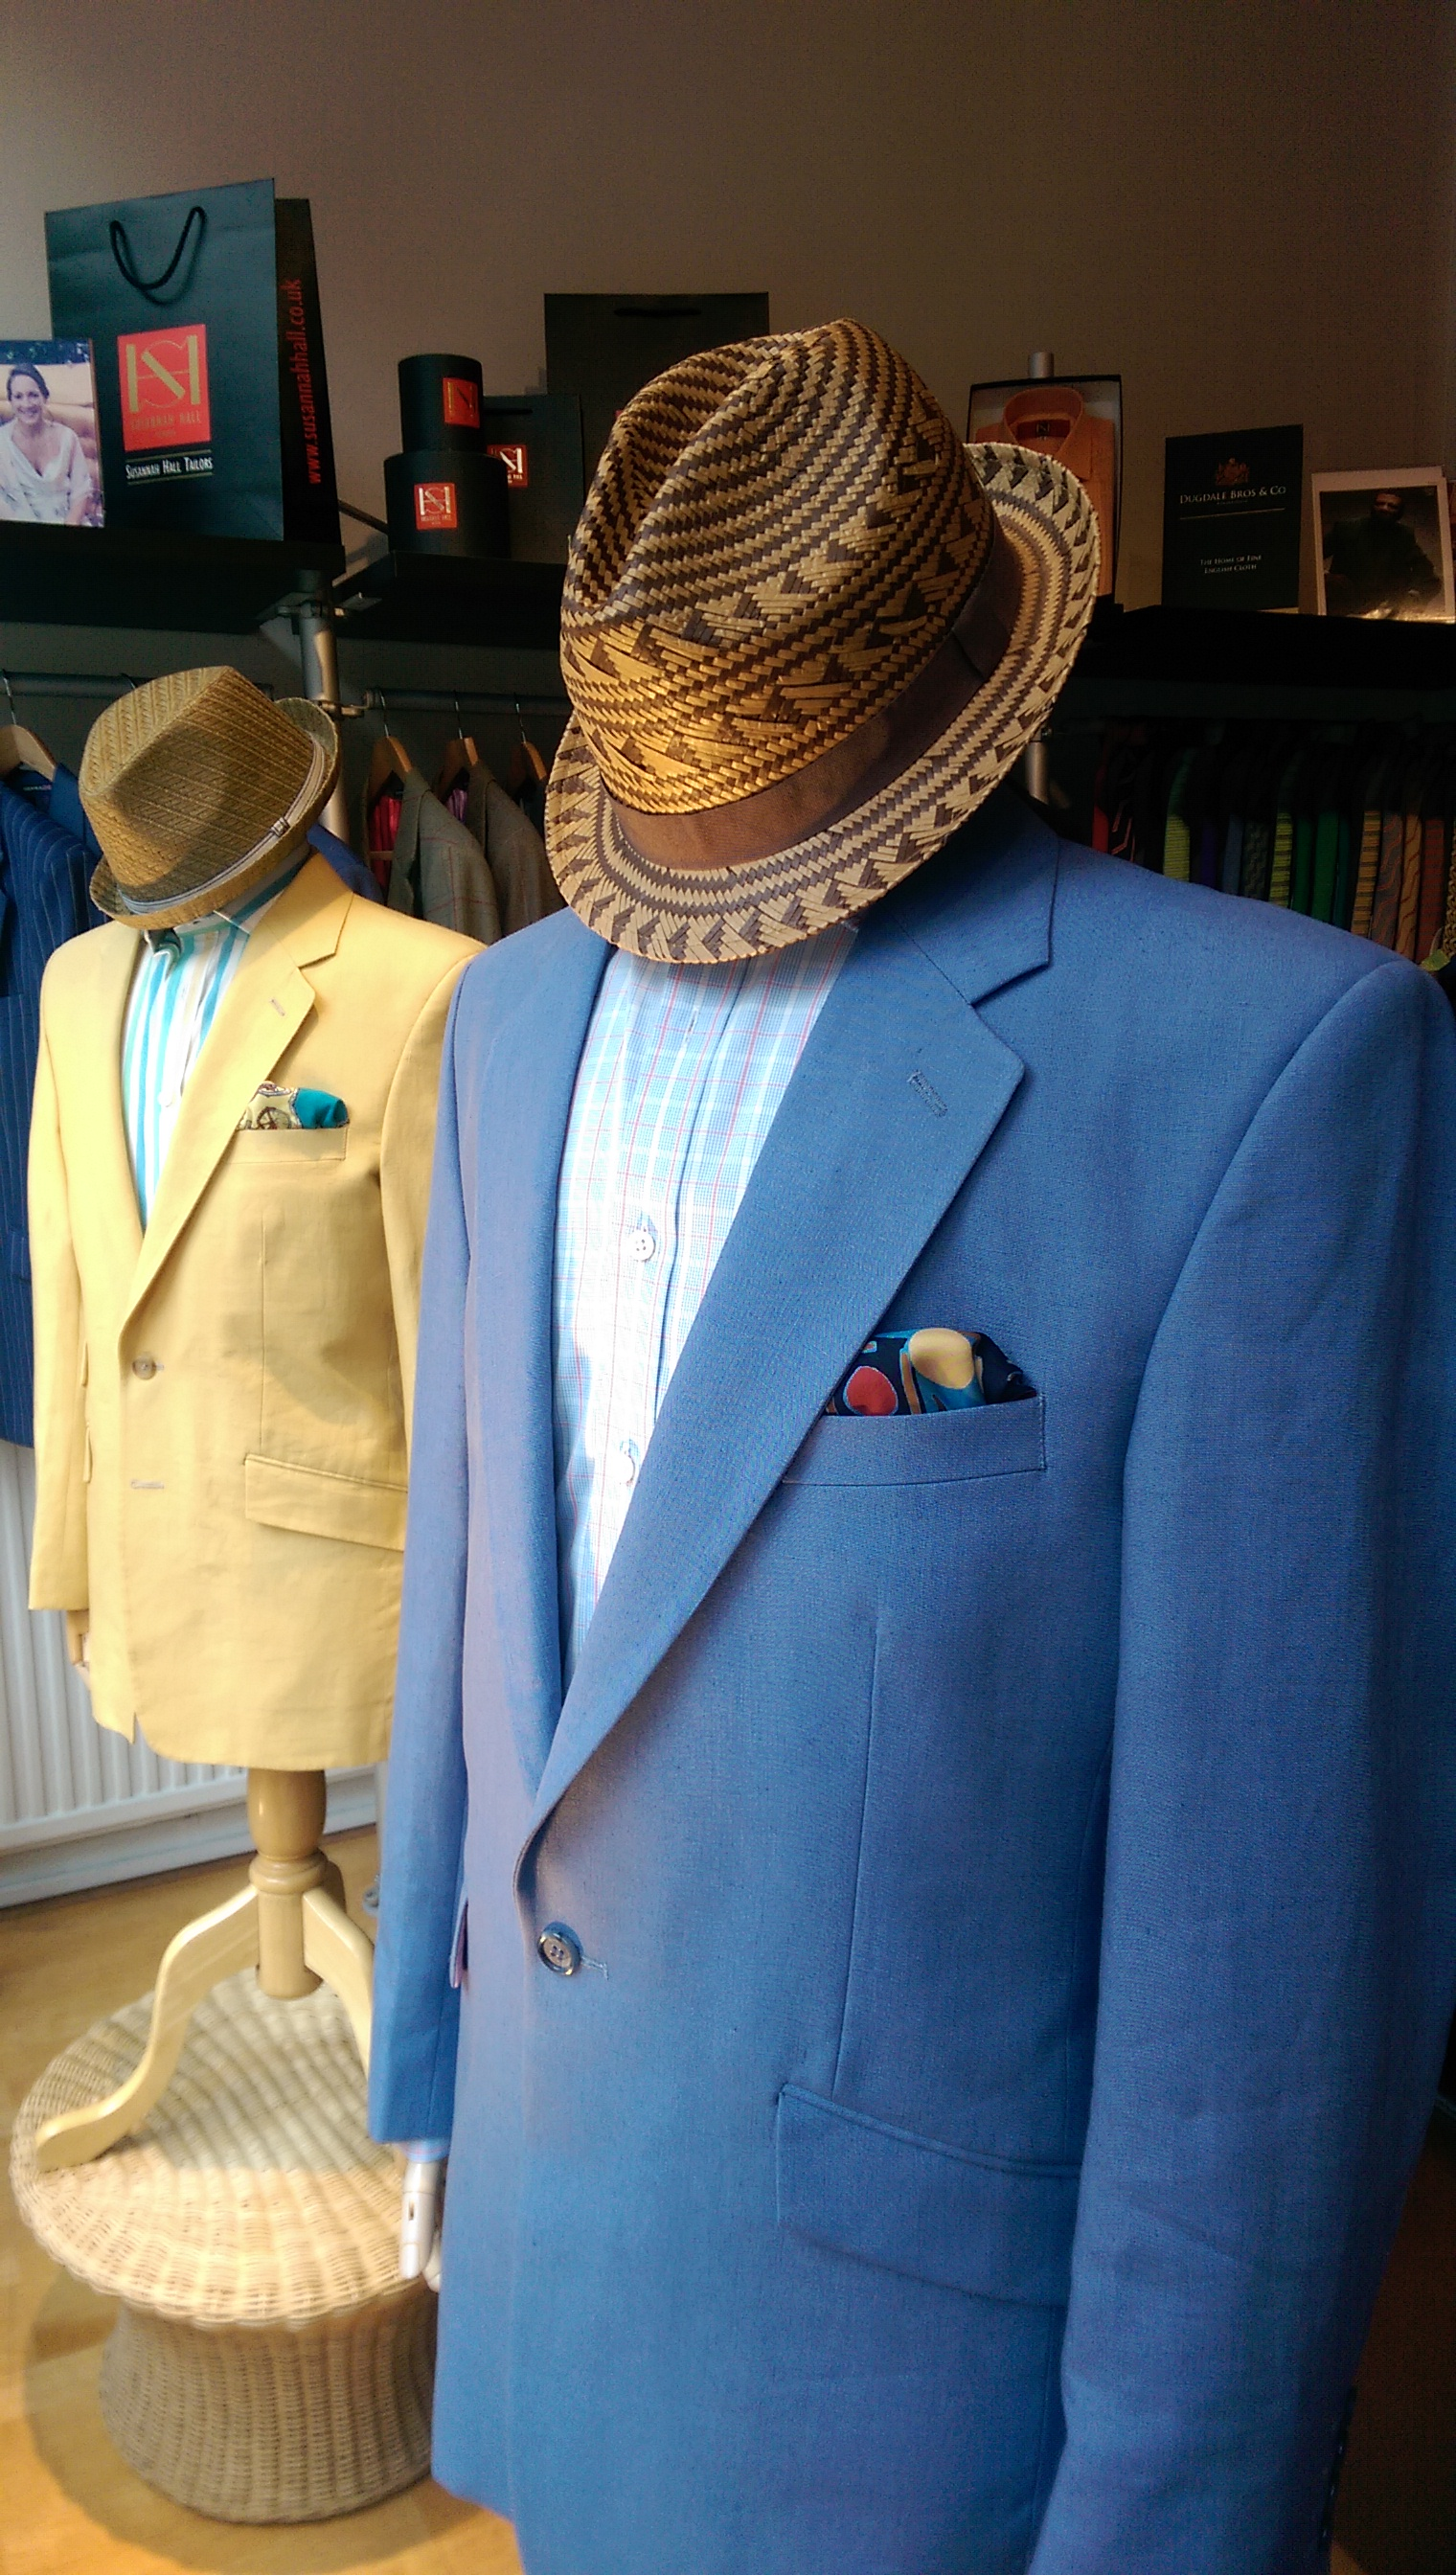 pure-irish-linen-jacket-all-uk-made-british-bespoke-shirt-lightweight-suit-tailoring.jpg